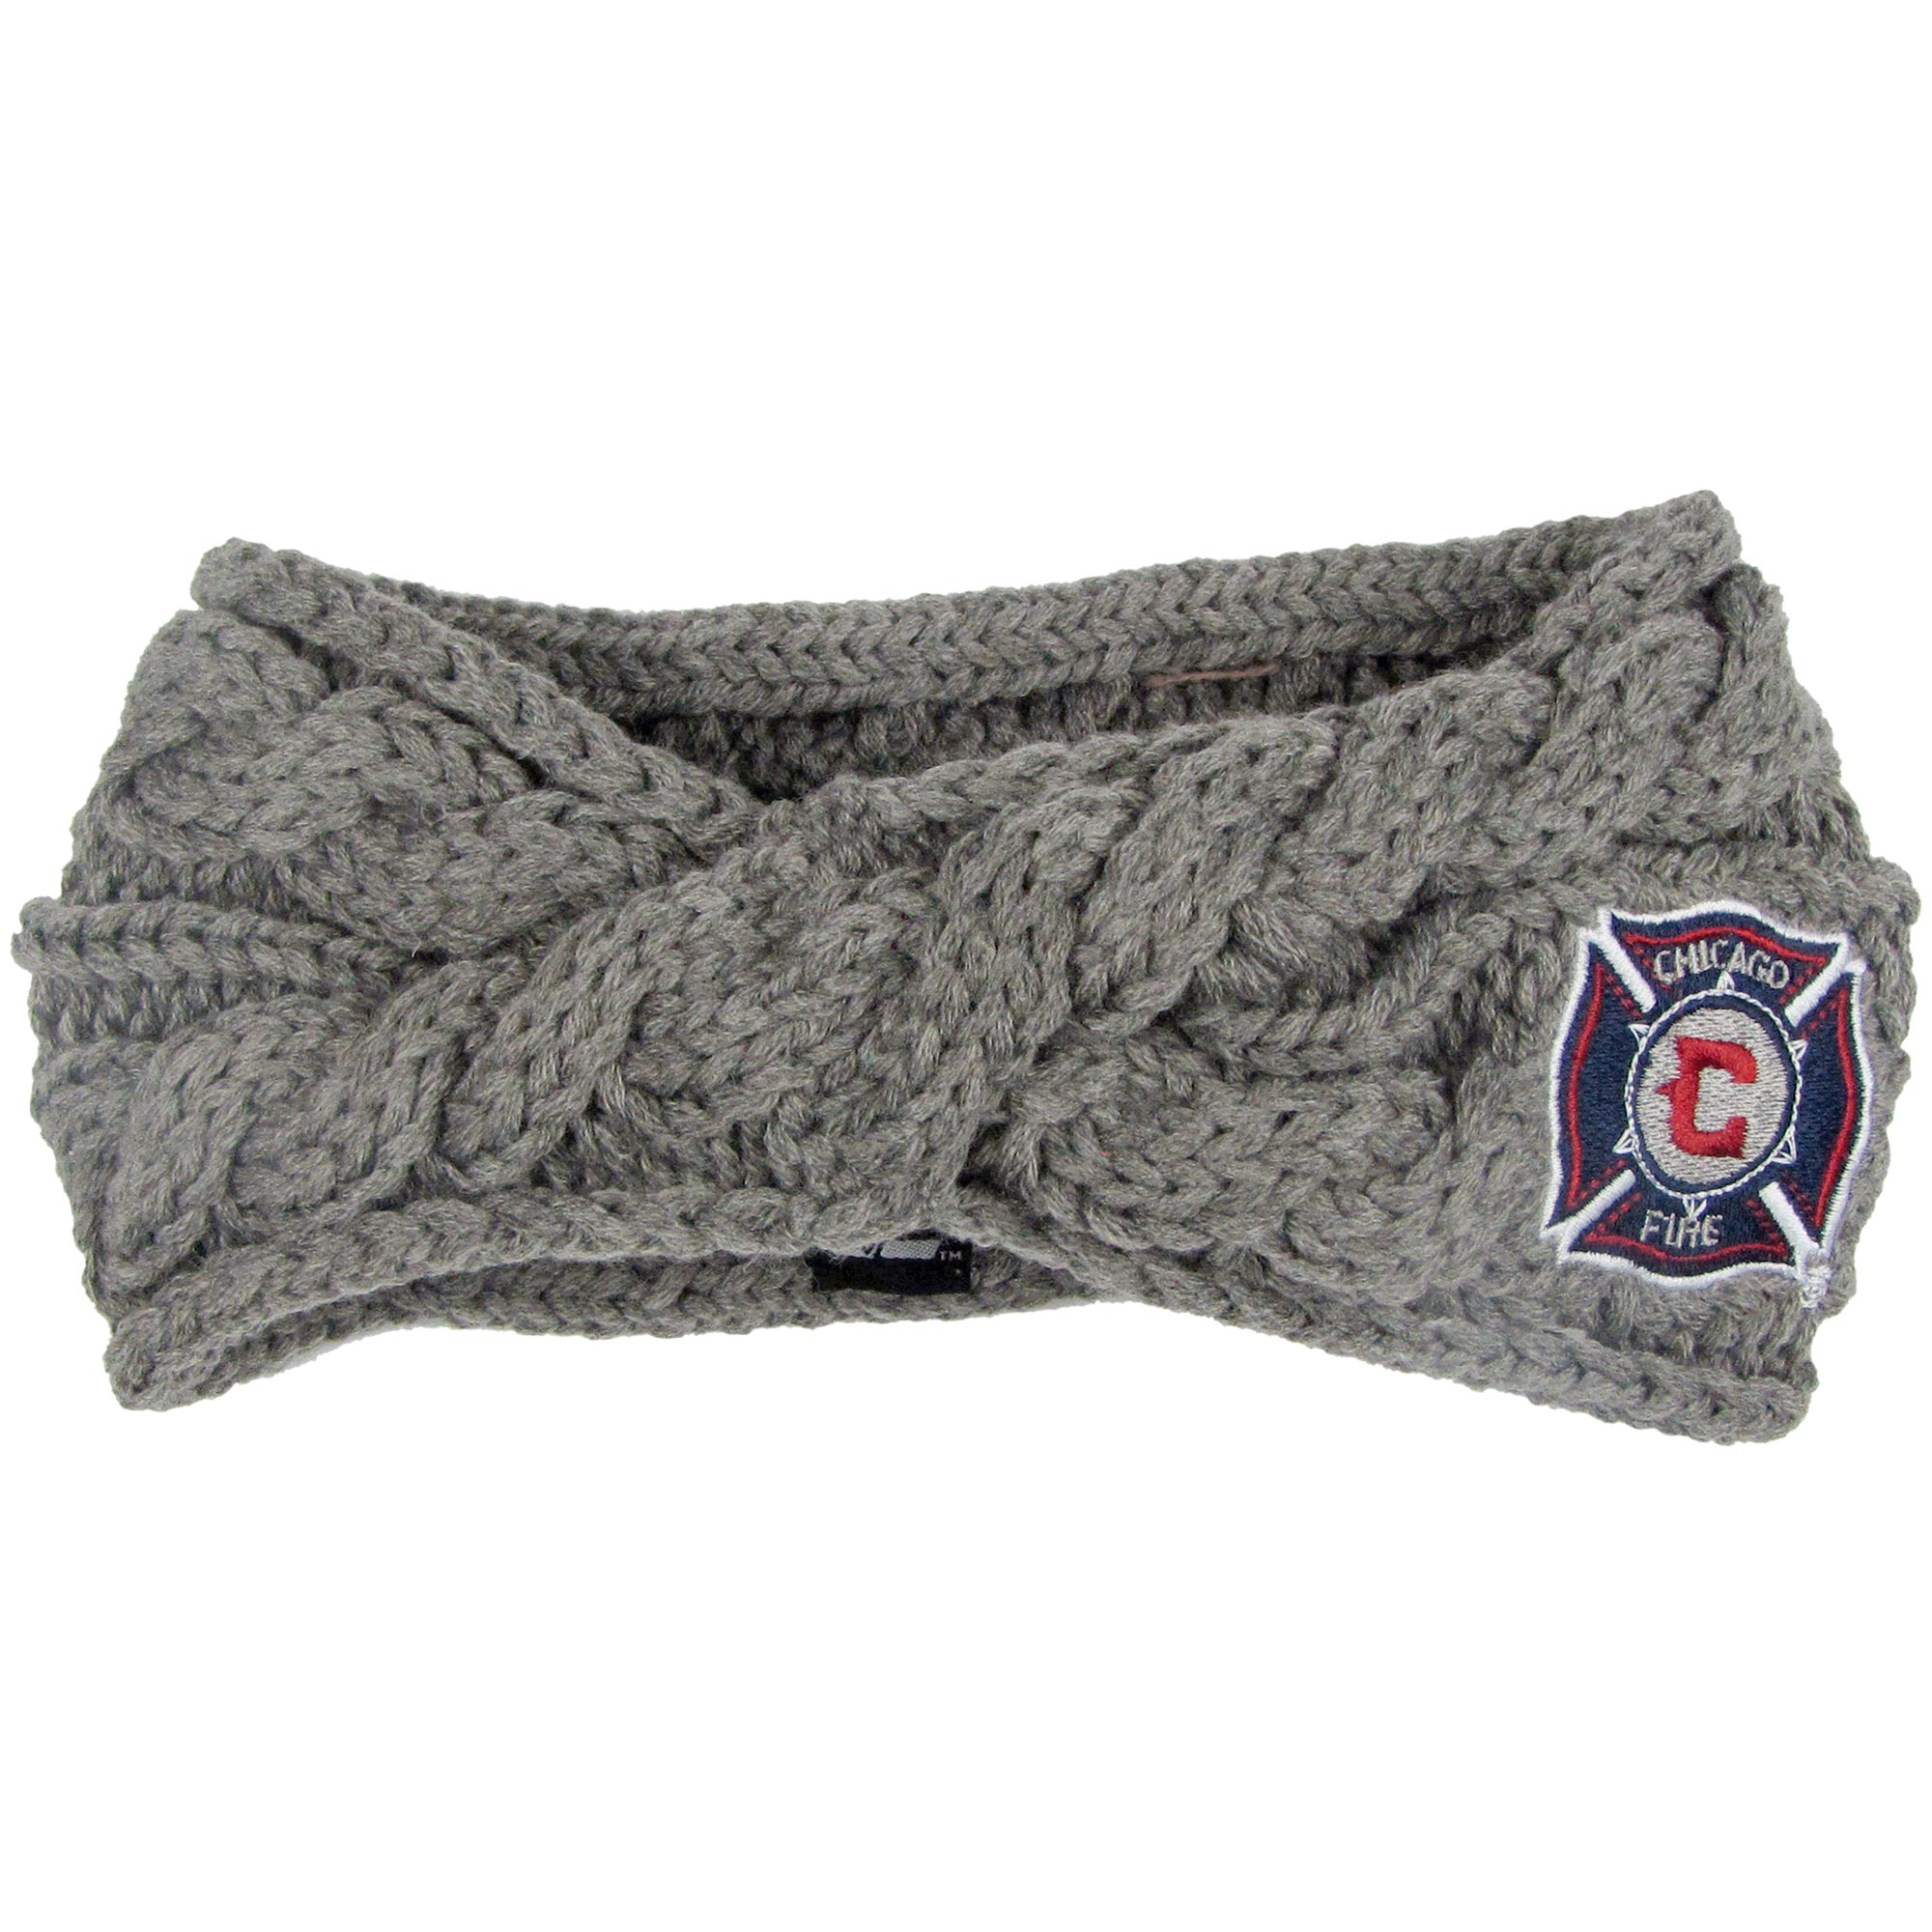 Chicago Fire ZooZatz Women's Cable Headband - Charcoal - No Size